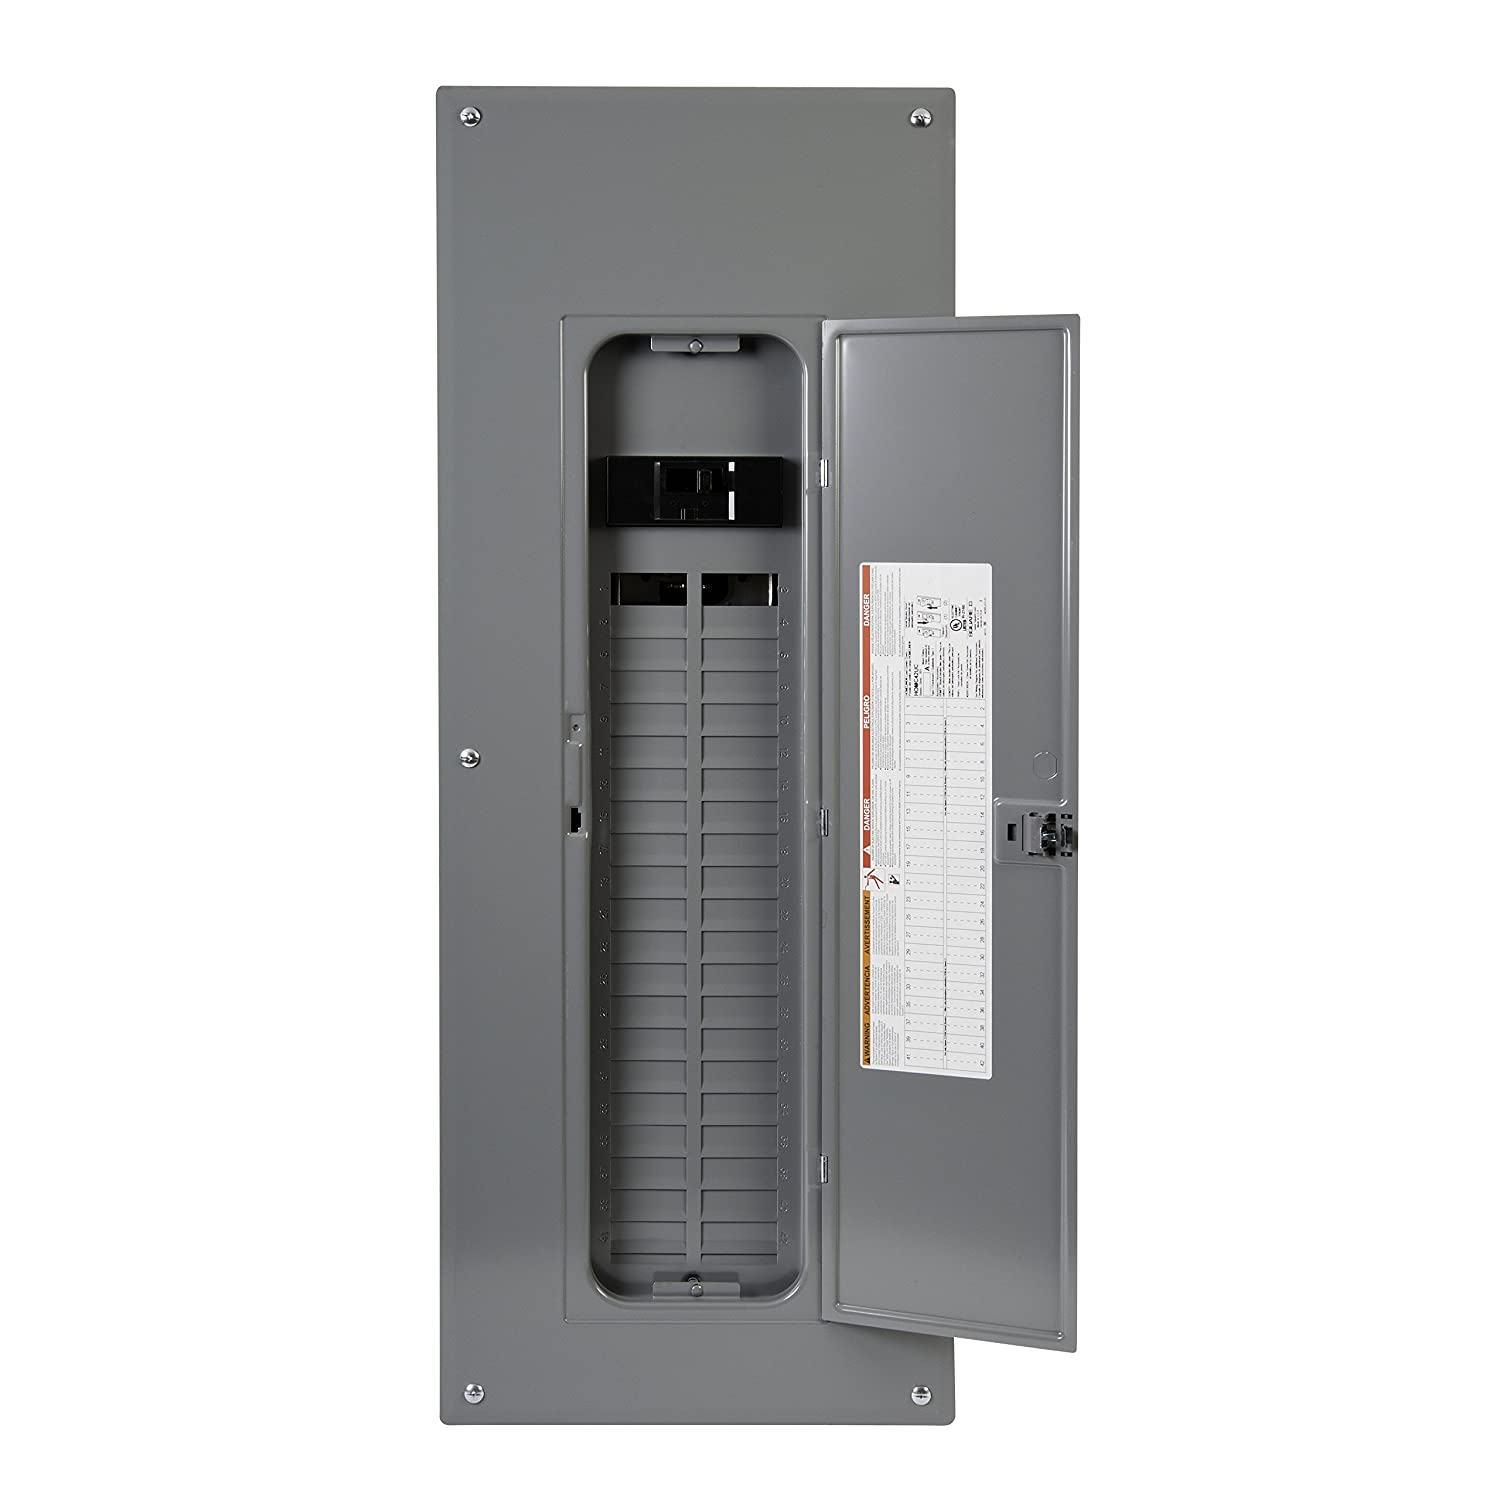 Square d by schneider electric hom4284m225pc homeline 225 amp 42 square d by schneider electric hom4284m225pc homeline 225 amp 42 space 84 circuit indoor main breaker load center with cover plug on neutral ready greentooth Images